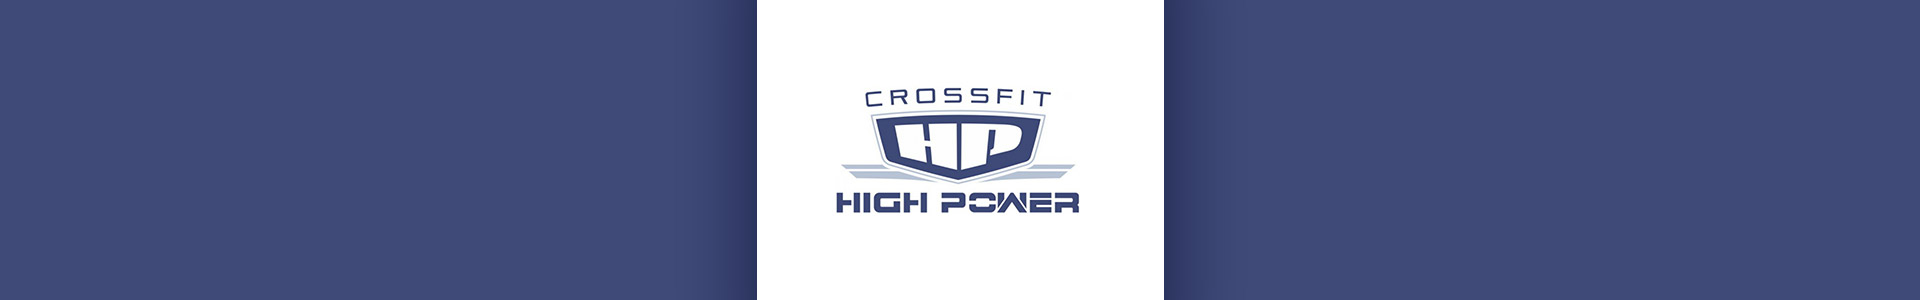 CrossFit High Power Banner